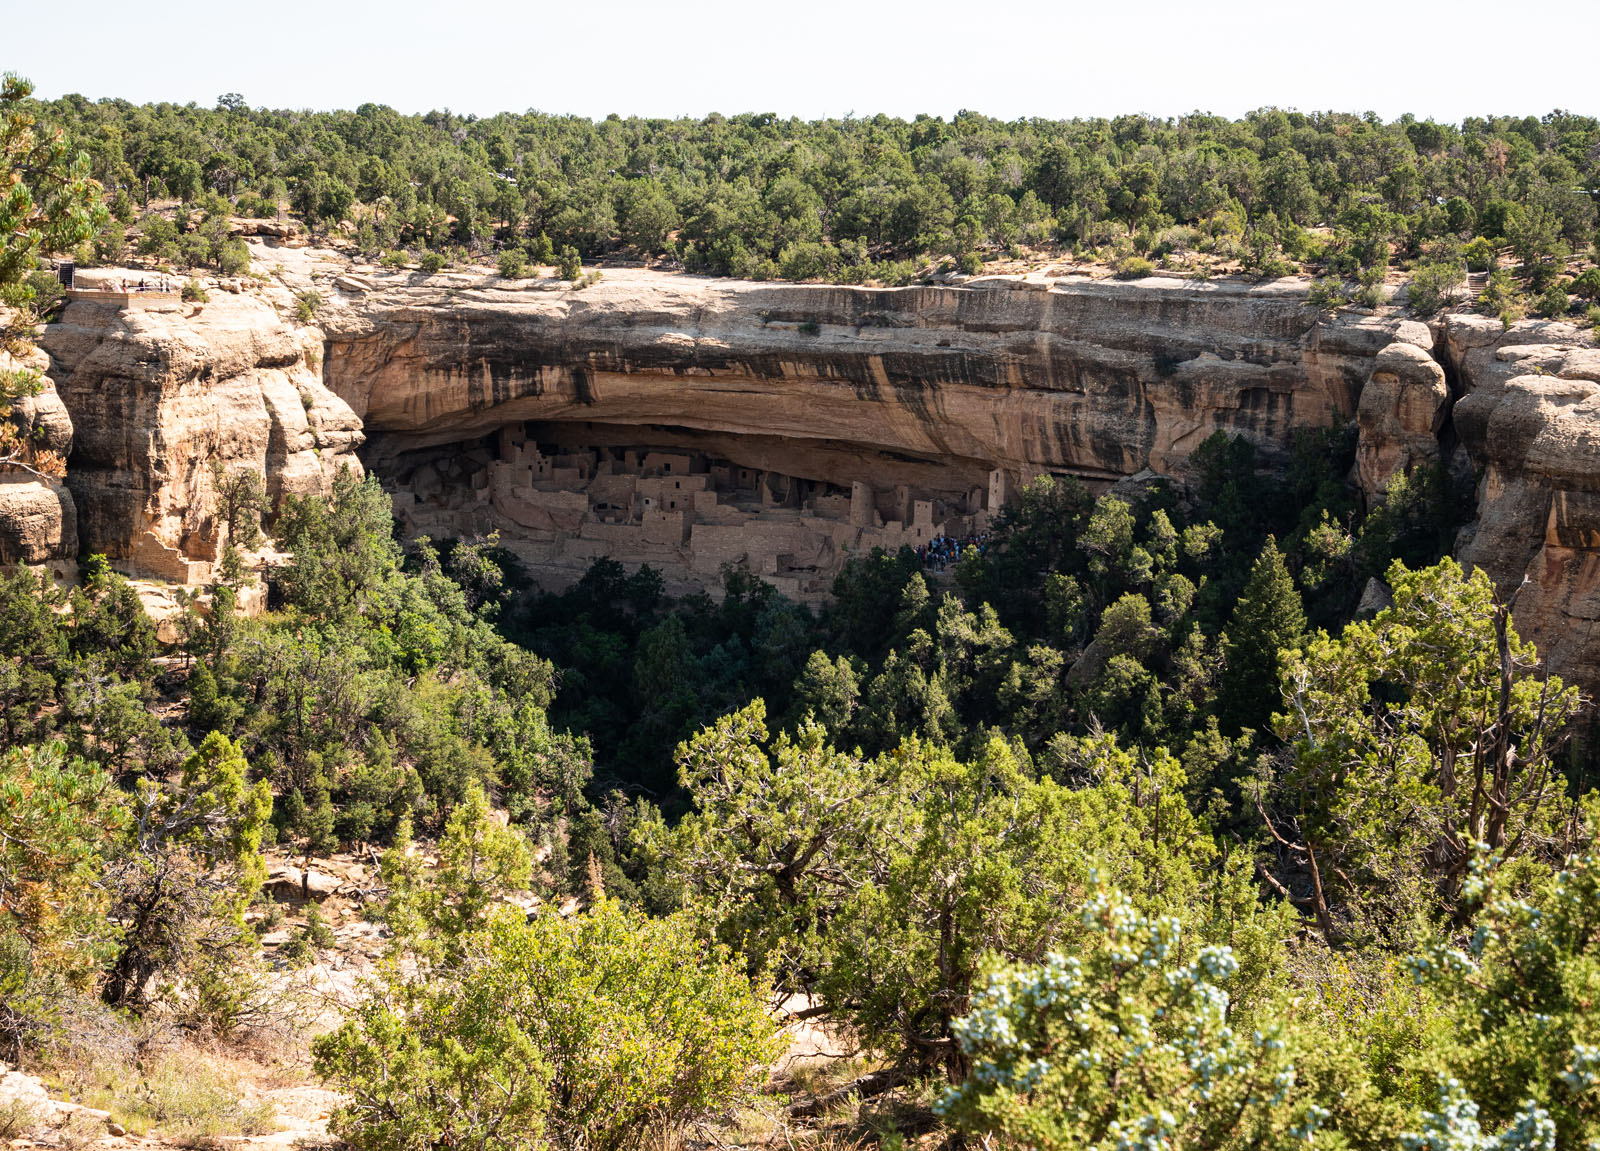 CO_Vacationmoon_MesaVerde-1000657.jpg